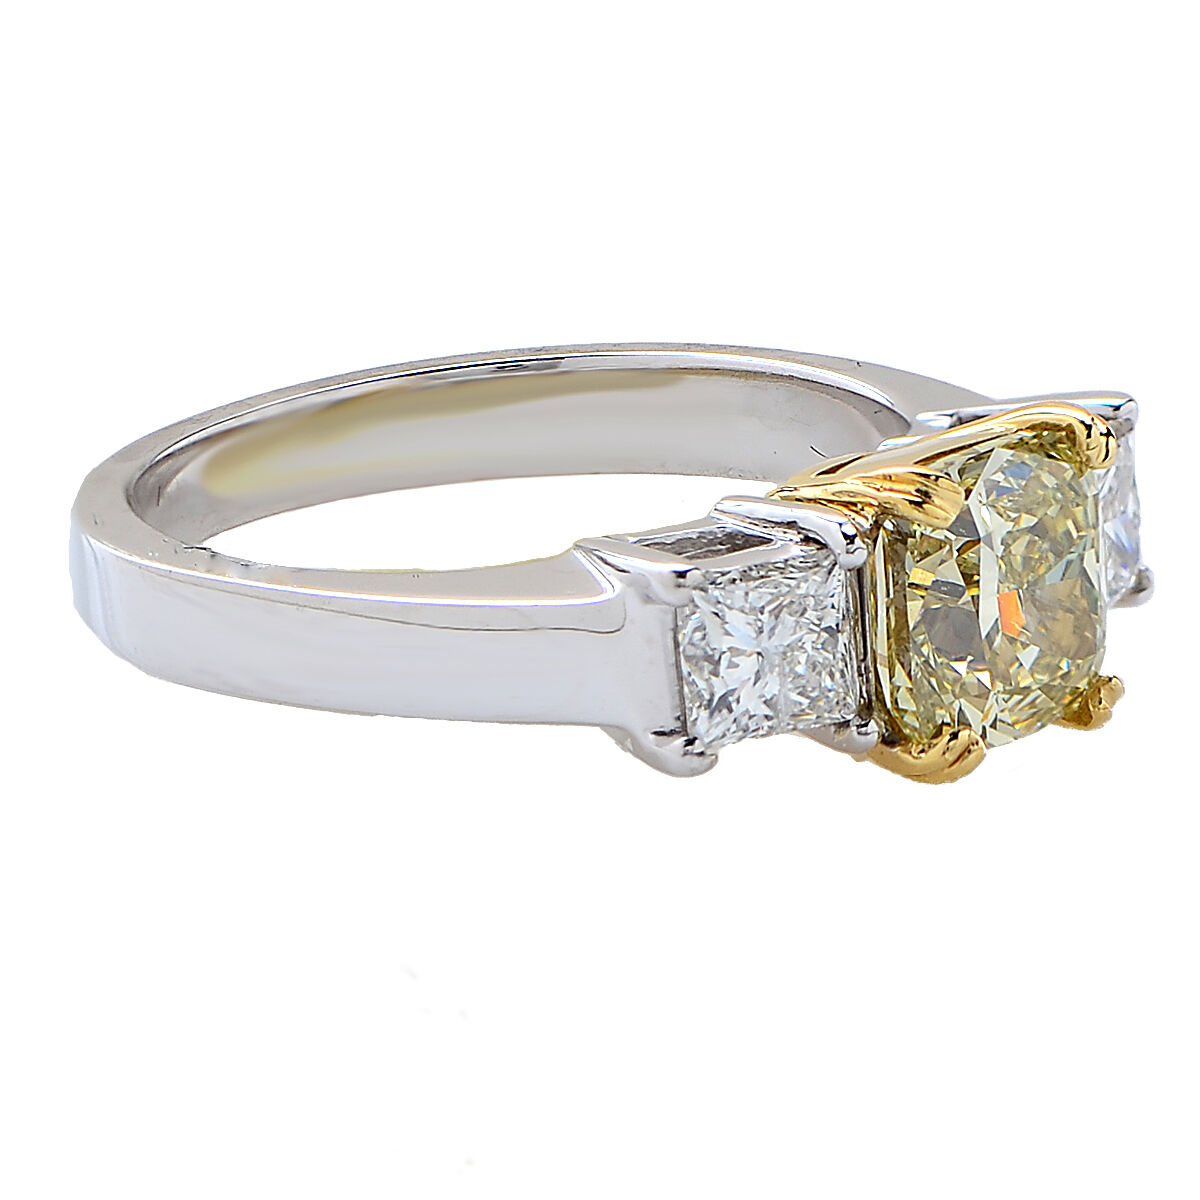 Beautiful GIA Certified Natural Fancy Color Yellow Diamond Engagement Ring 1